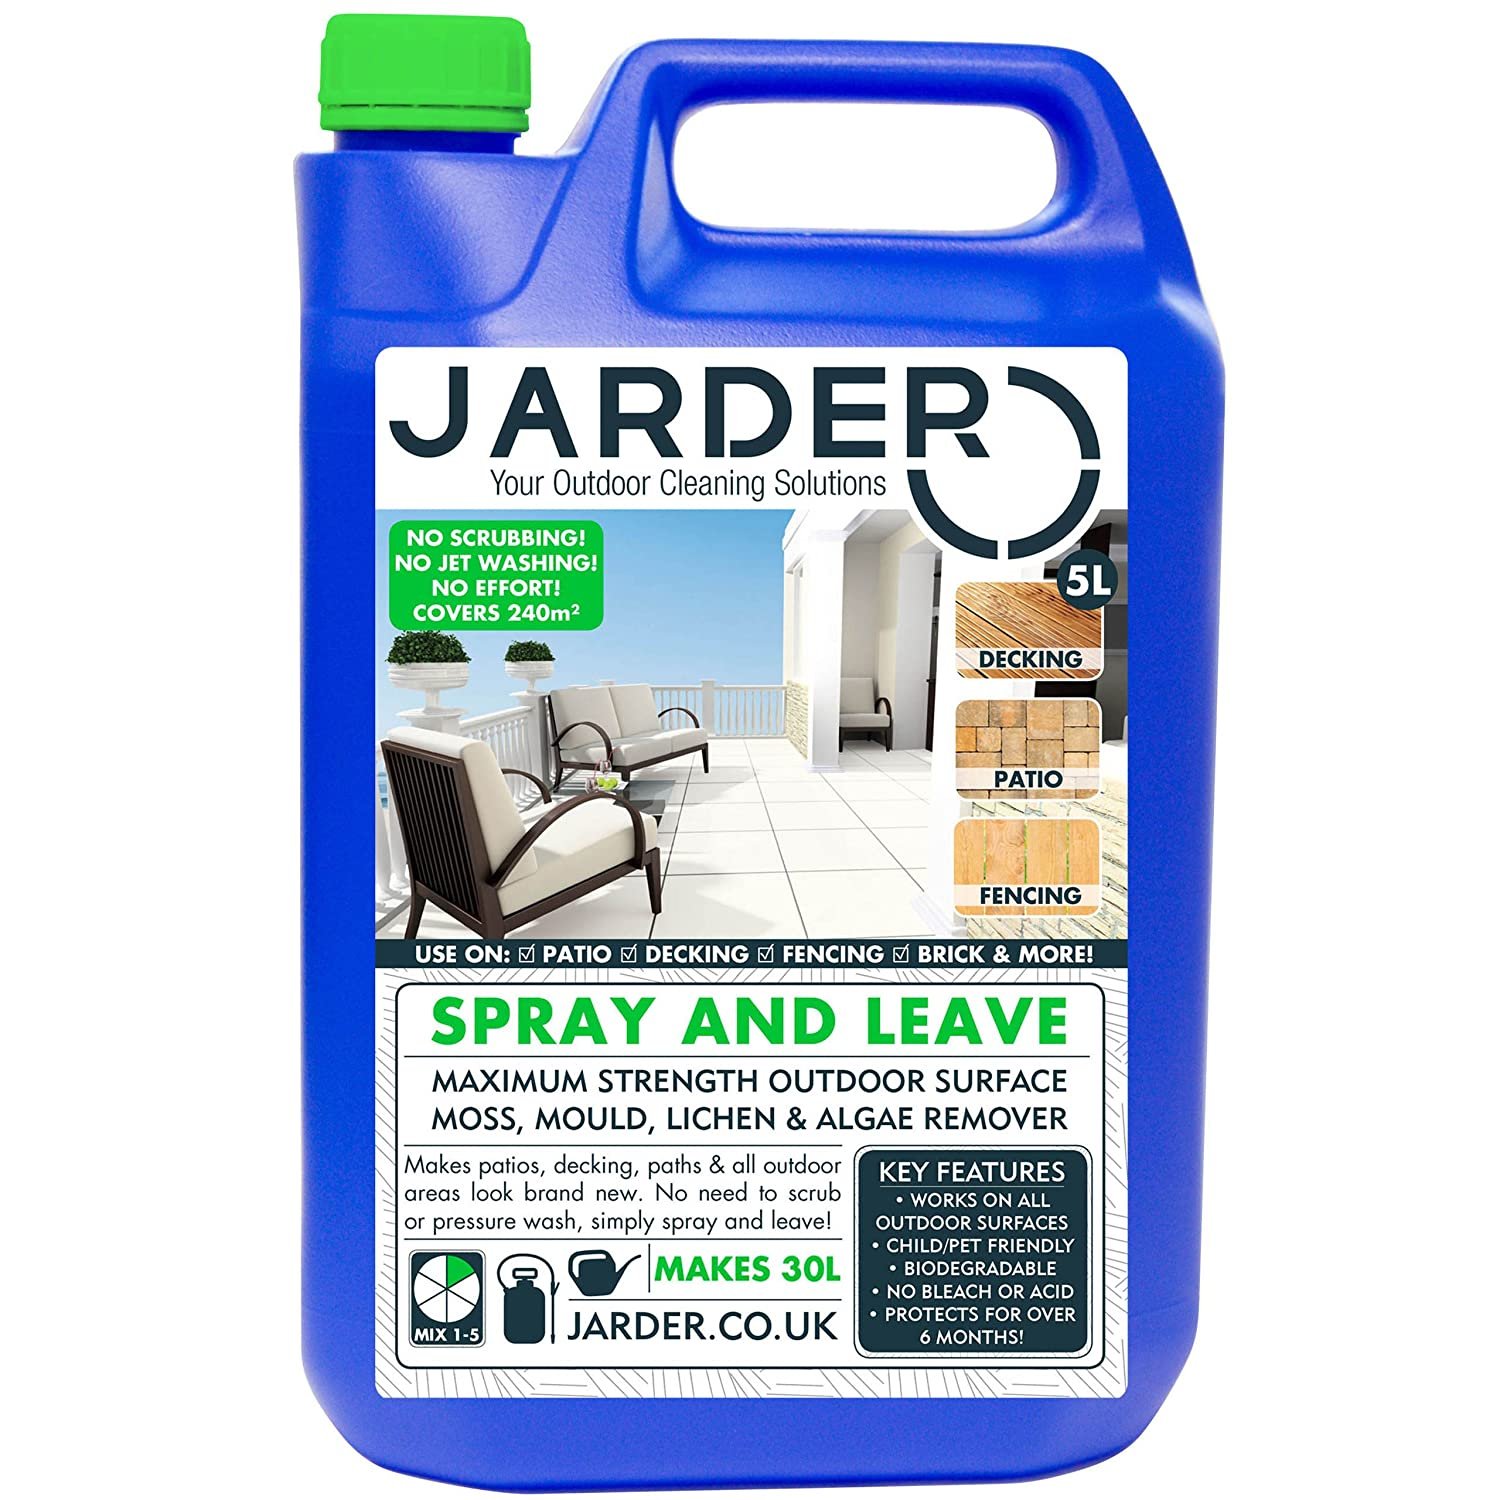 Jarder 5 Litre Concentrate Spray & Leave Cleaner - Patio Fencing Decking - Moss Mould & Algae Killer